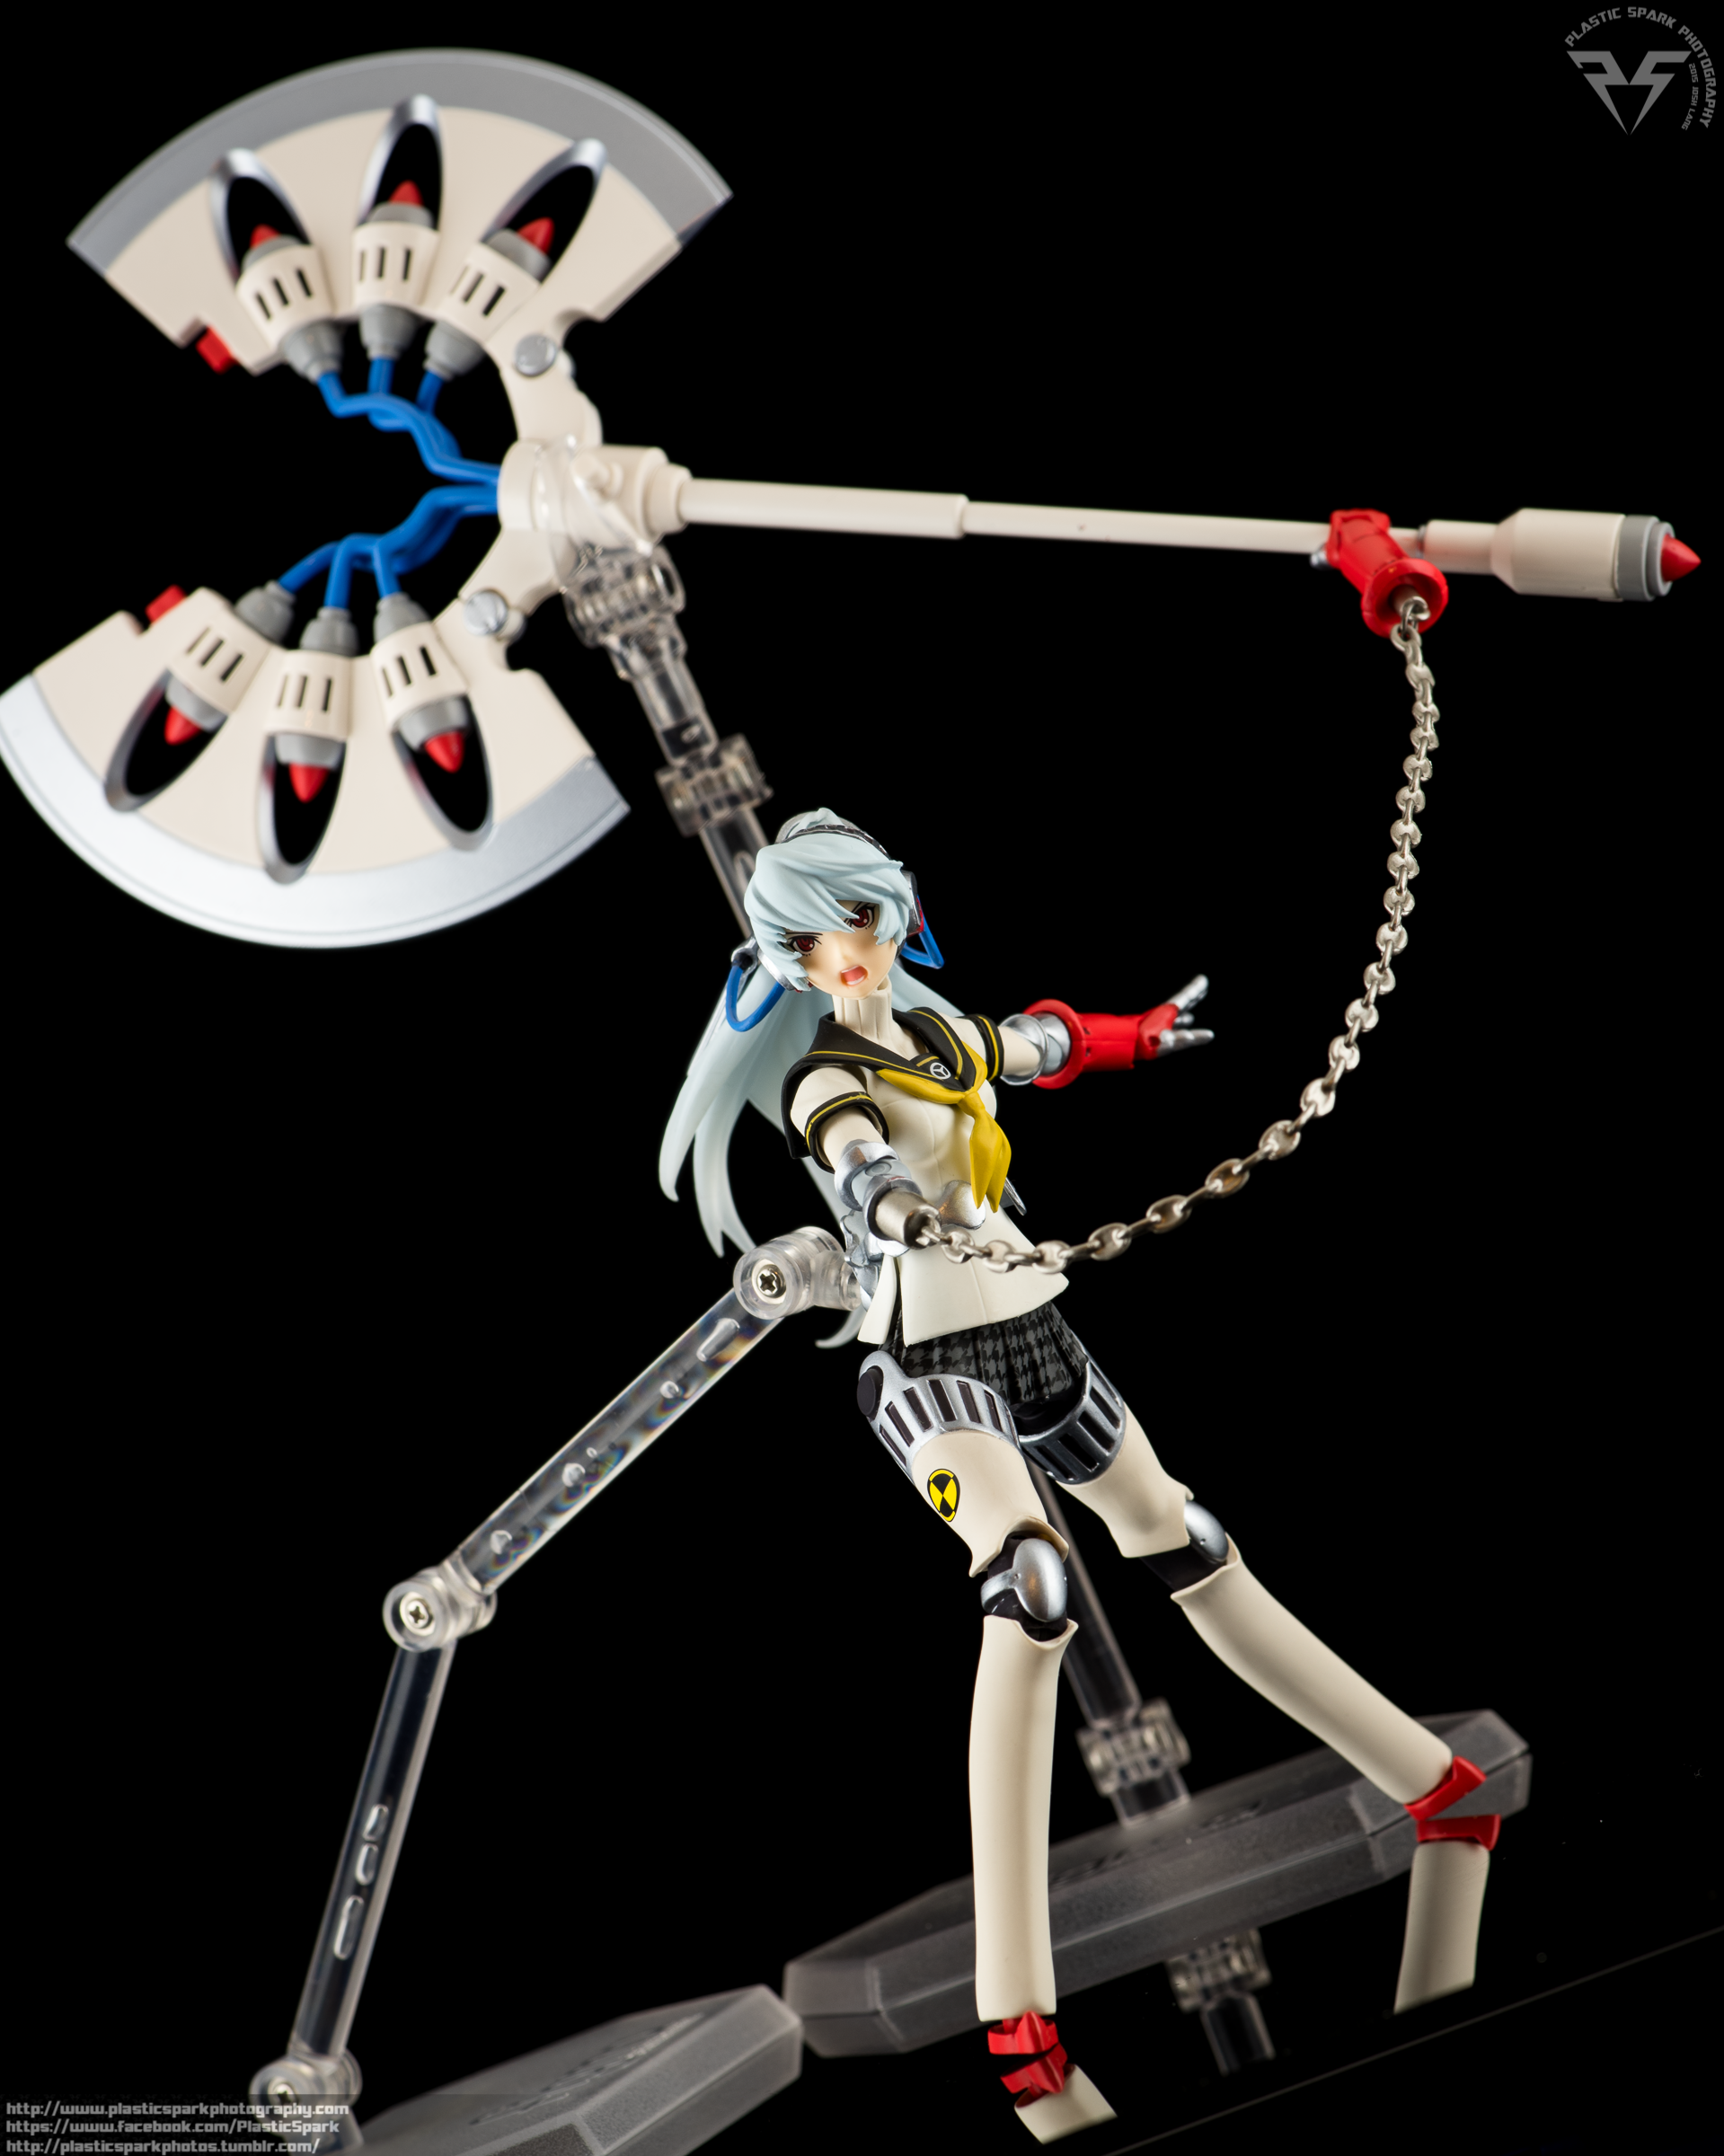 Figma-Labrys-(26-of-33).png